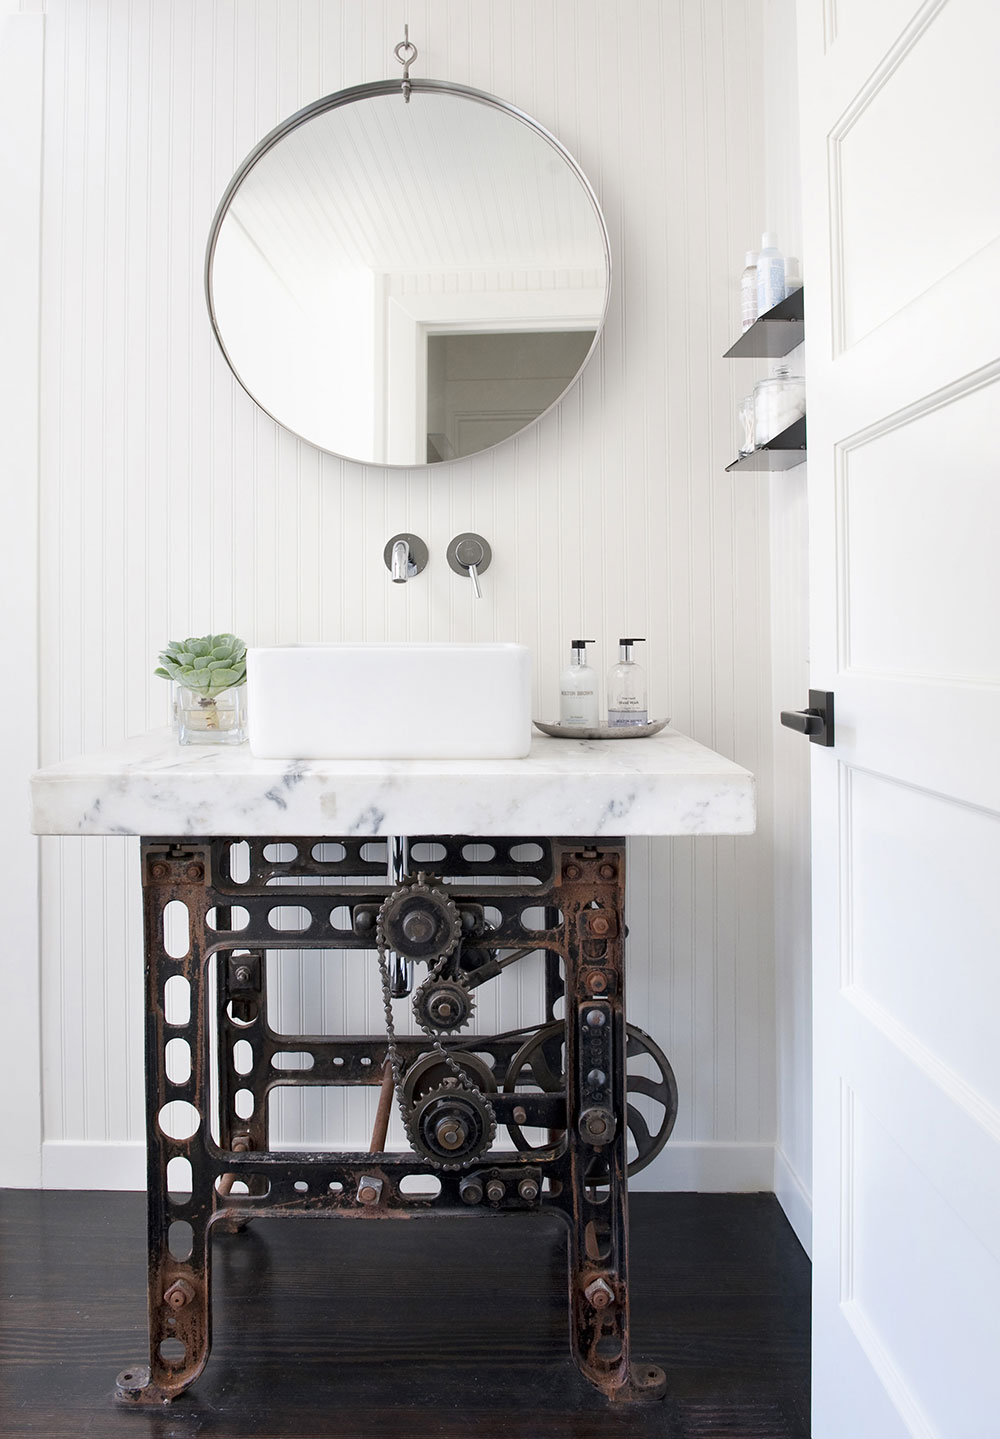 Industrial Style Bathroom Ideas, Industrial Style Bathroom Ideas Industrial Style Bathroom Ideas to Glam up Your Home rustic industrial bathroom vanity